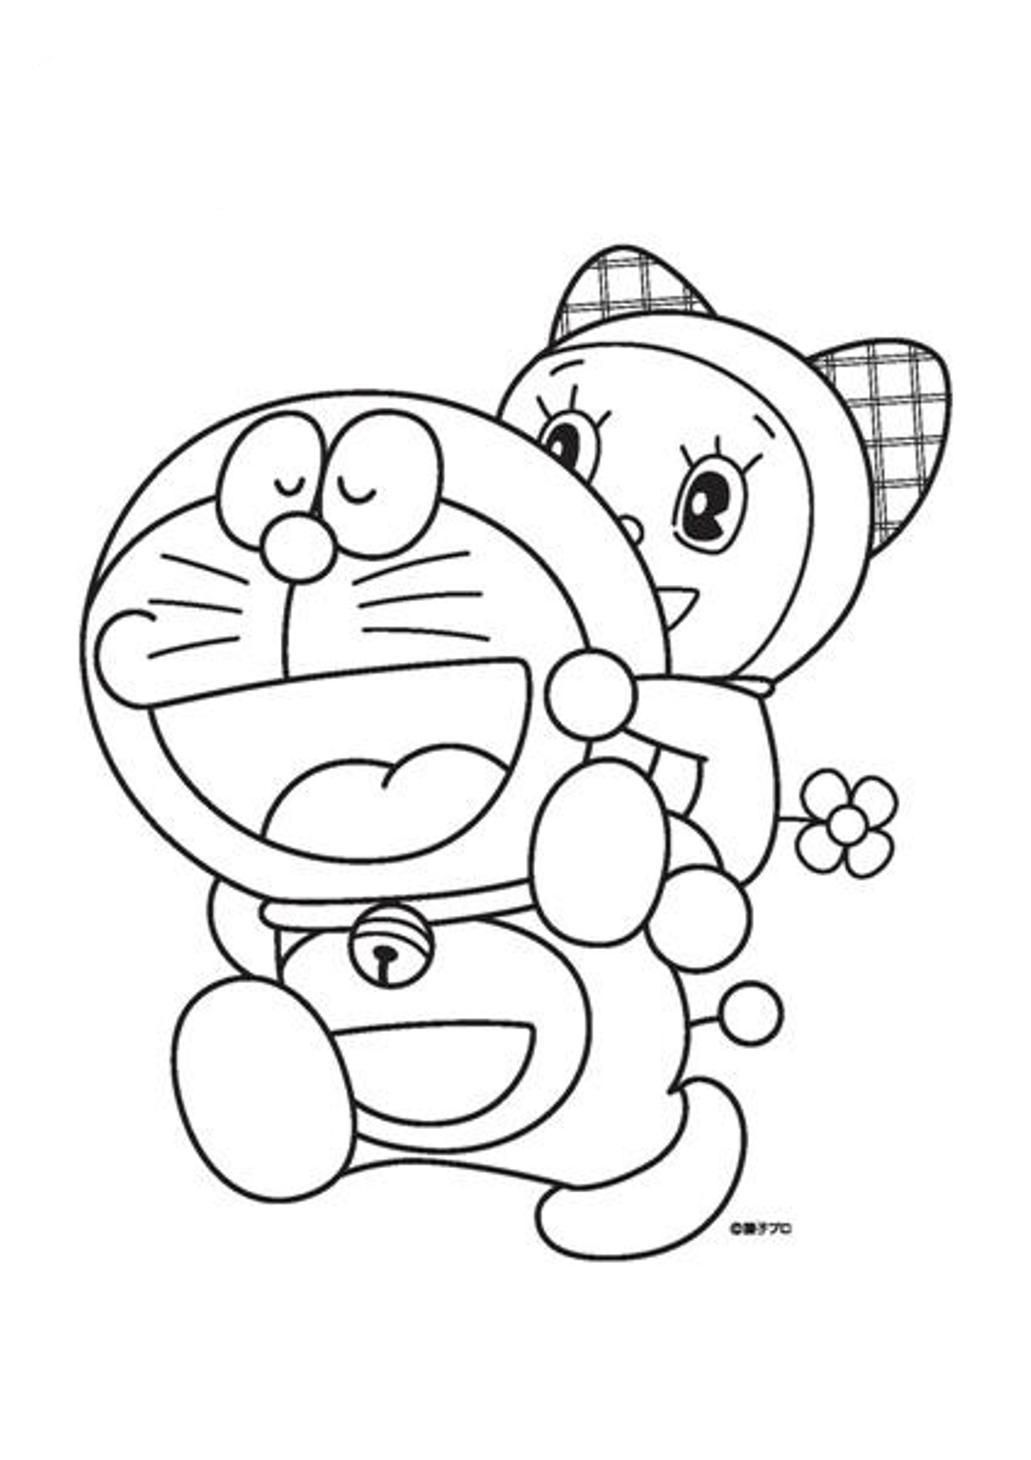 Doraemon Coloring Pages Best Coloring Pages For Kids Cartoon Coloring Pages Coloring Books Kitty Coloring